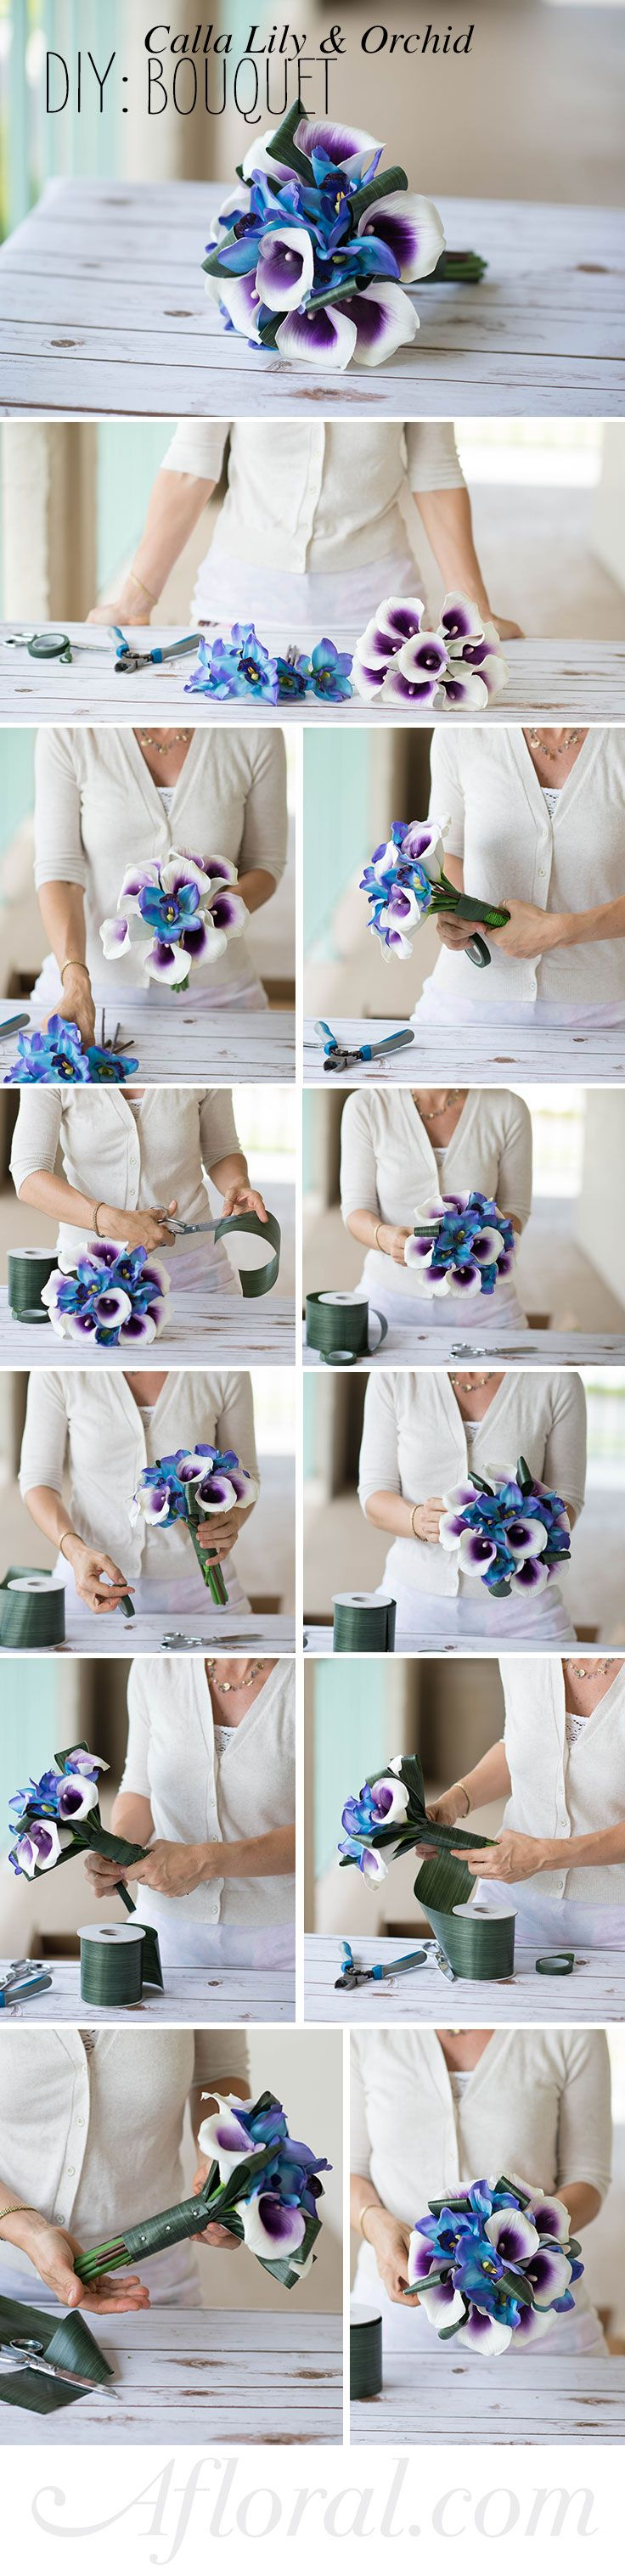 DIY Bridal Bouquet.  Create this gorgeous silk flower bouquet, perfect for a destination wedding.  Start with a premade Calla Lily bouquet and add your favorite flowers.  We used orchids for a more tropical feel.  Clip the flower blooms off of the stem and attach them to floral wire using floral tape to insert into the premade bouquet.  When you are happy with your design, secure with floral tape and cover the stems with faux leaf wrap.  Designed by WedIdeas.com with products from…